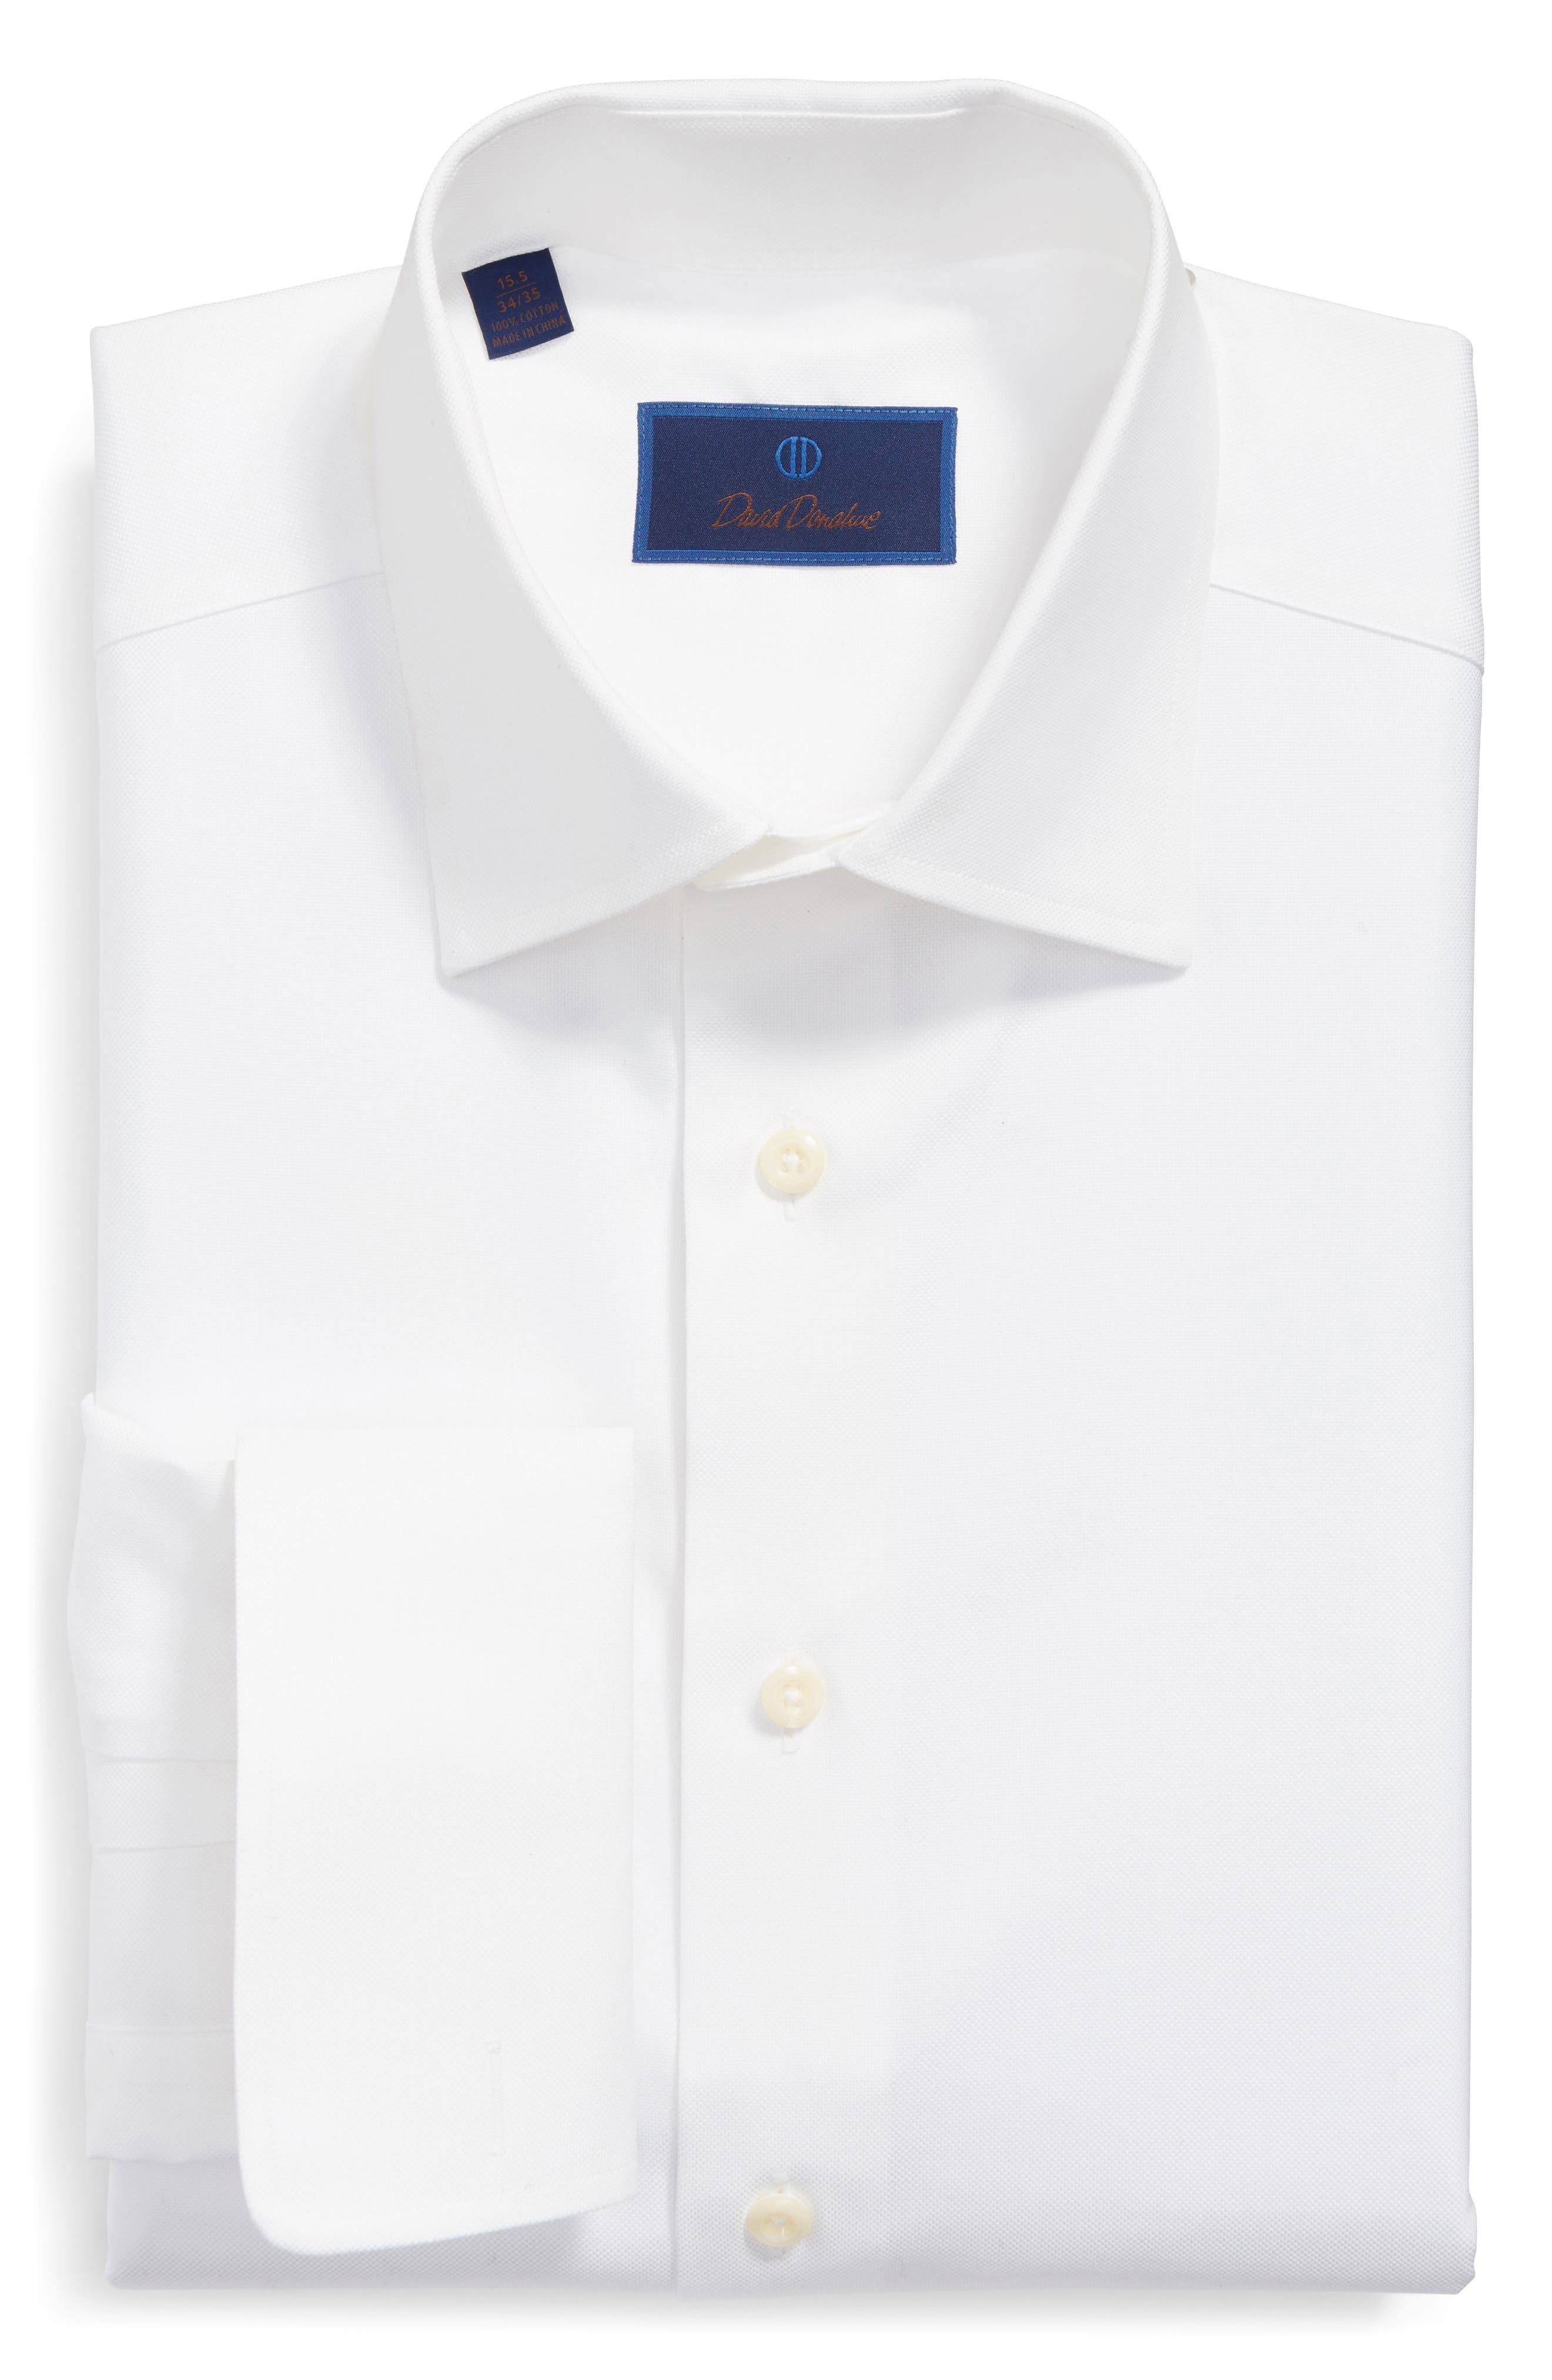 Alternate Image 1 Selected - David Donahue Regular Fit Texture French Cuff Dress Shirt